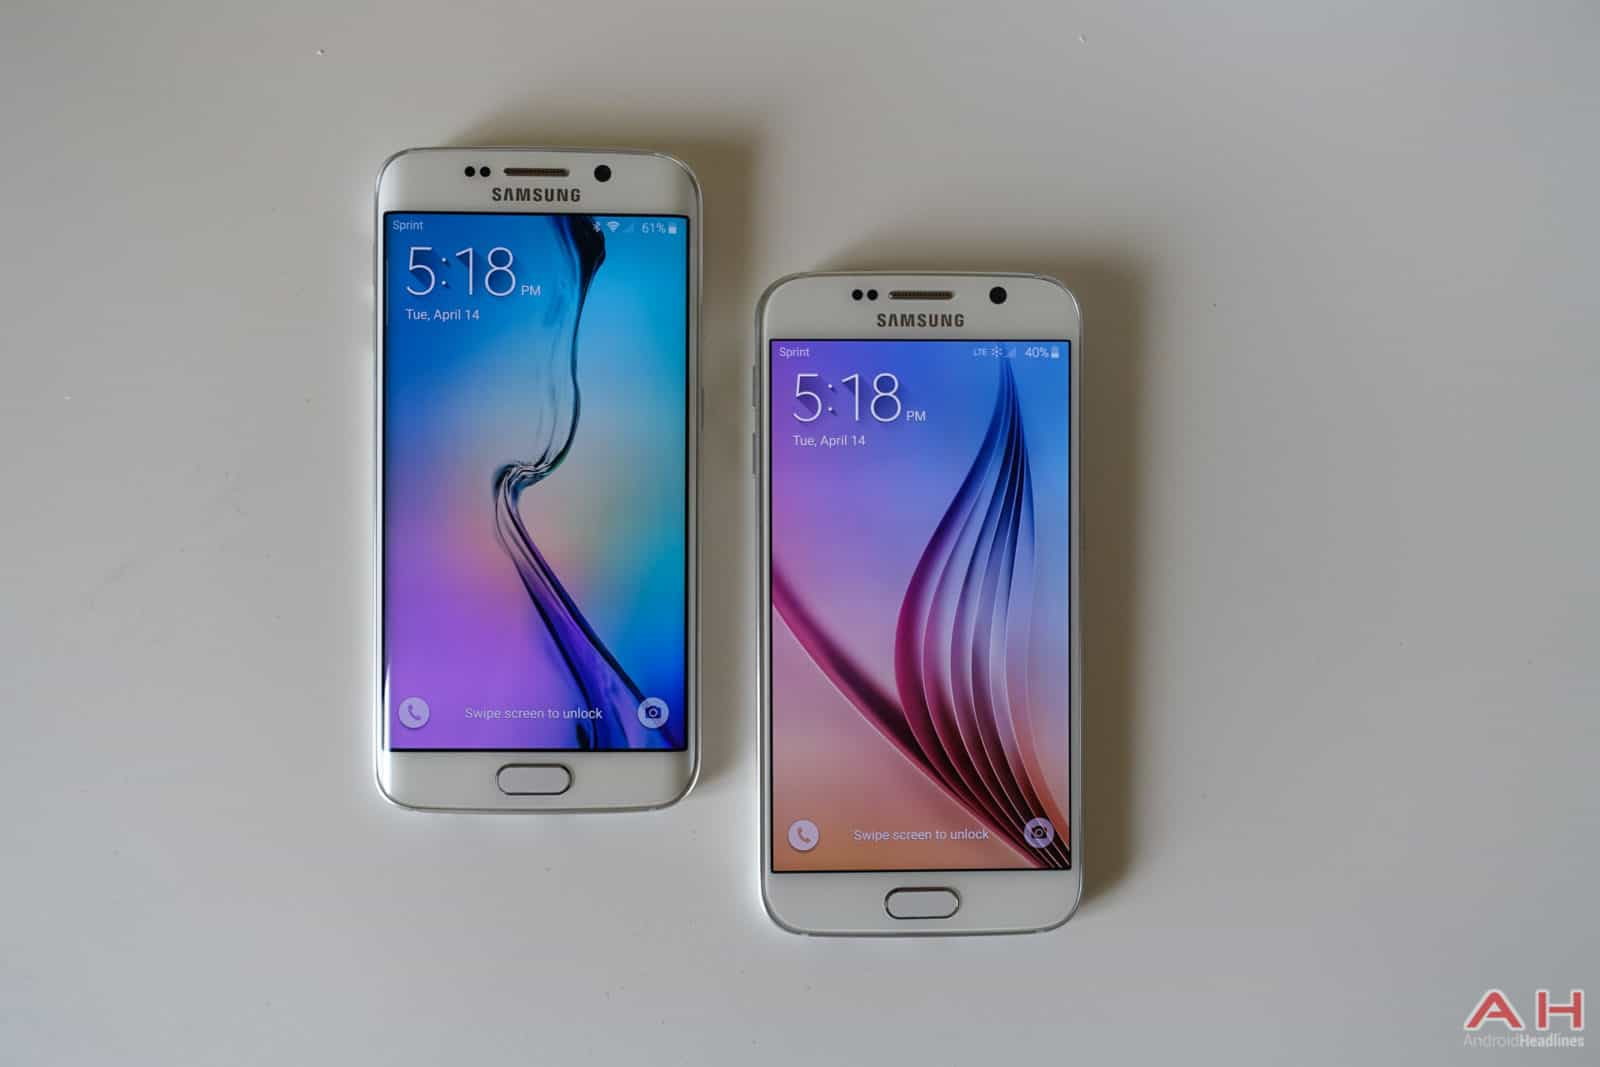 Galaxy-S6-Galaxy-S6-Edge-AH-2